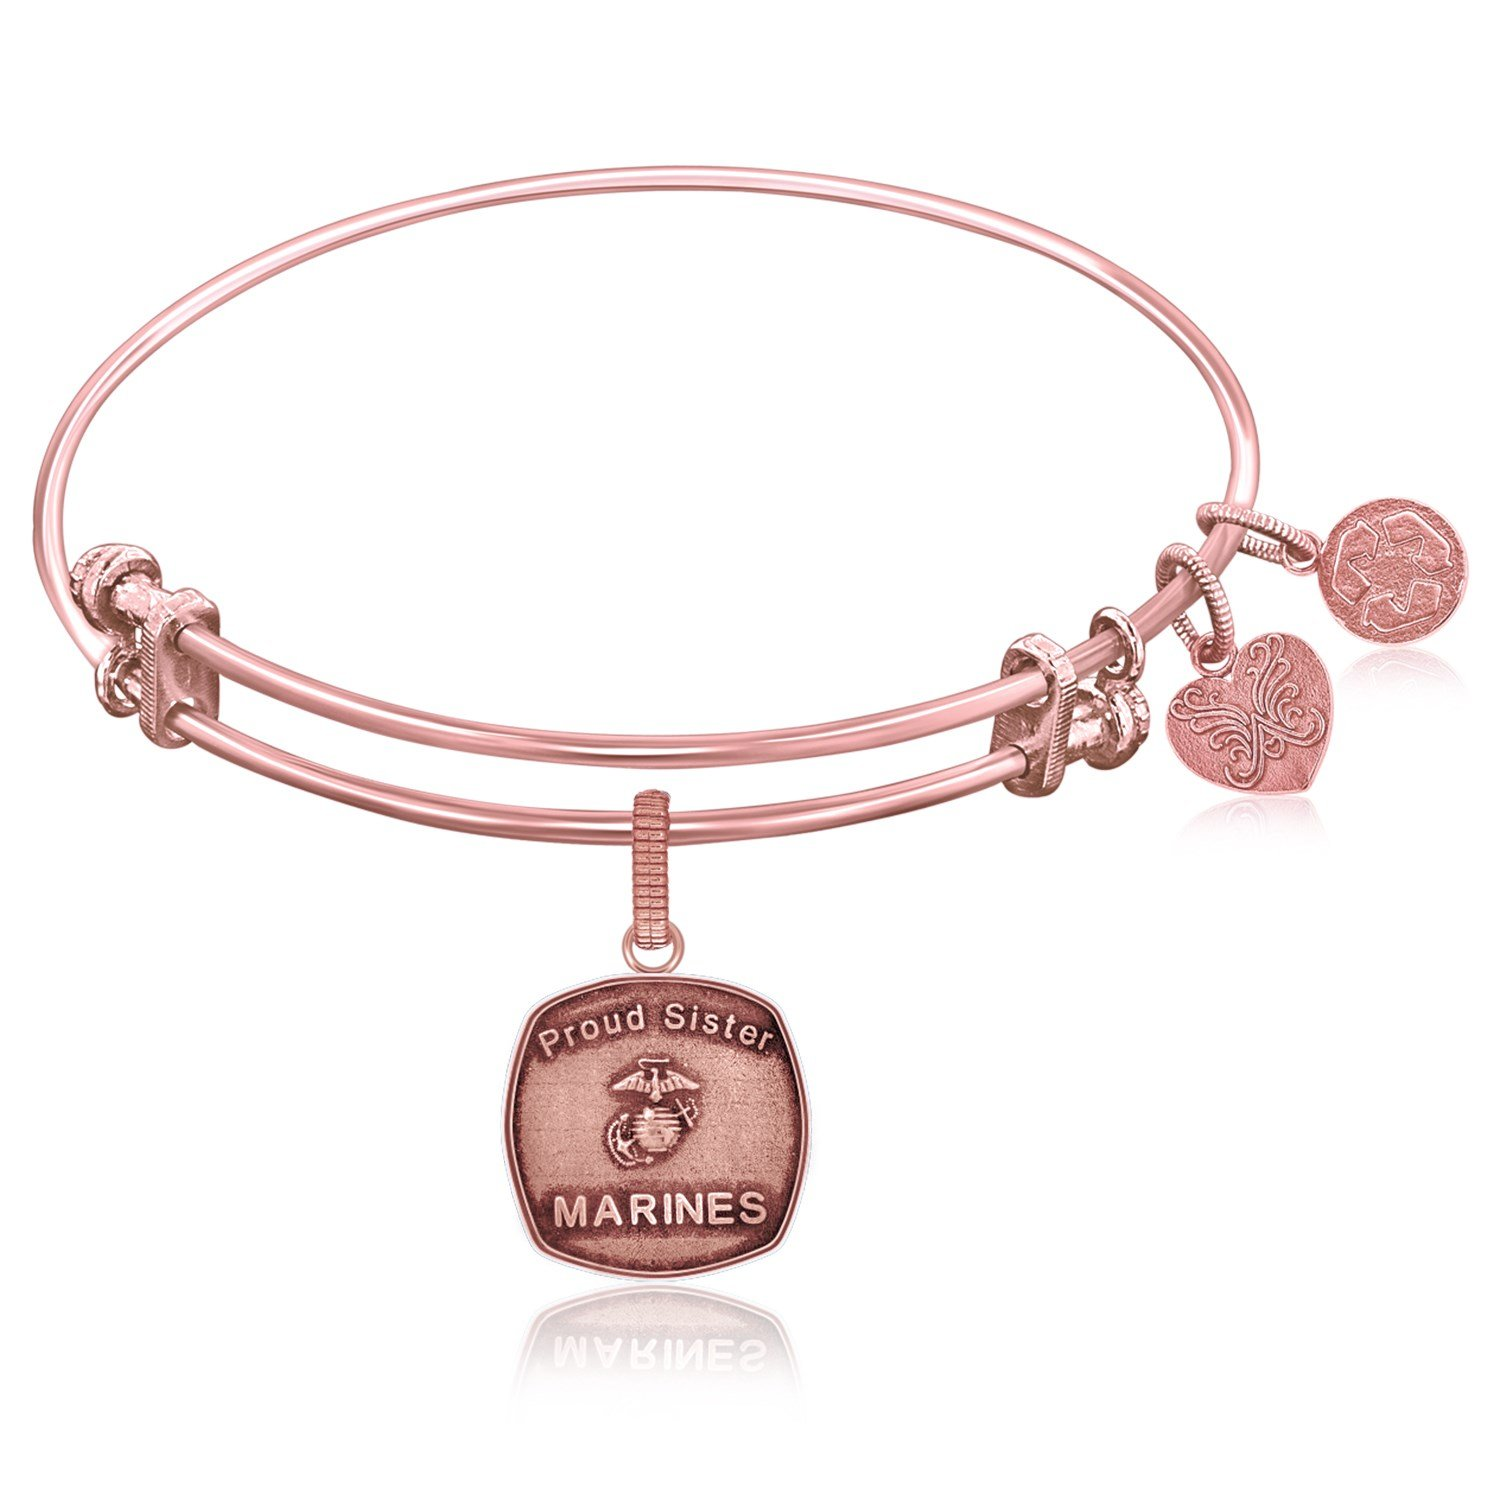 Expandable Bangle In Pink Tone Brass With U S Marines Proud Sister